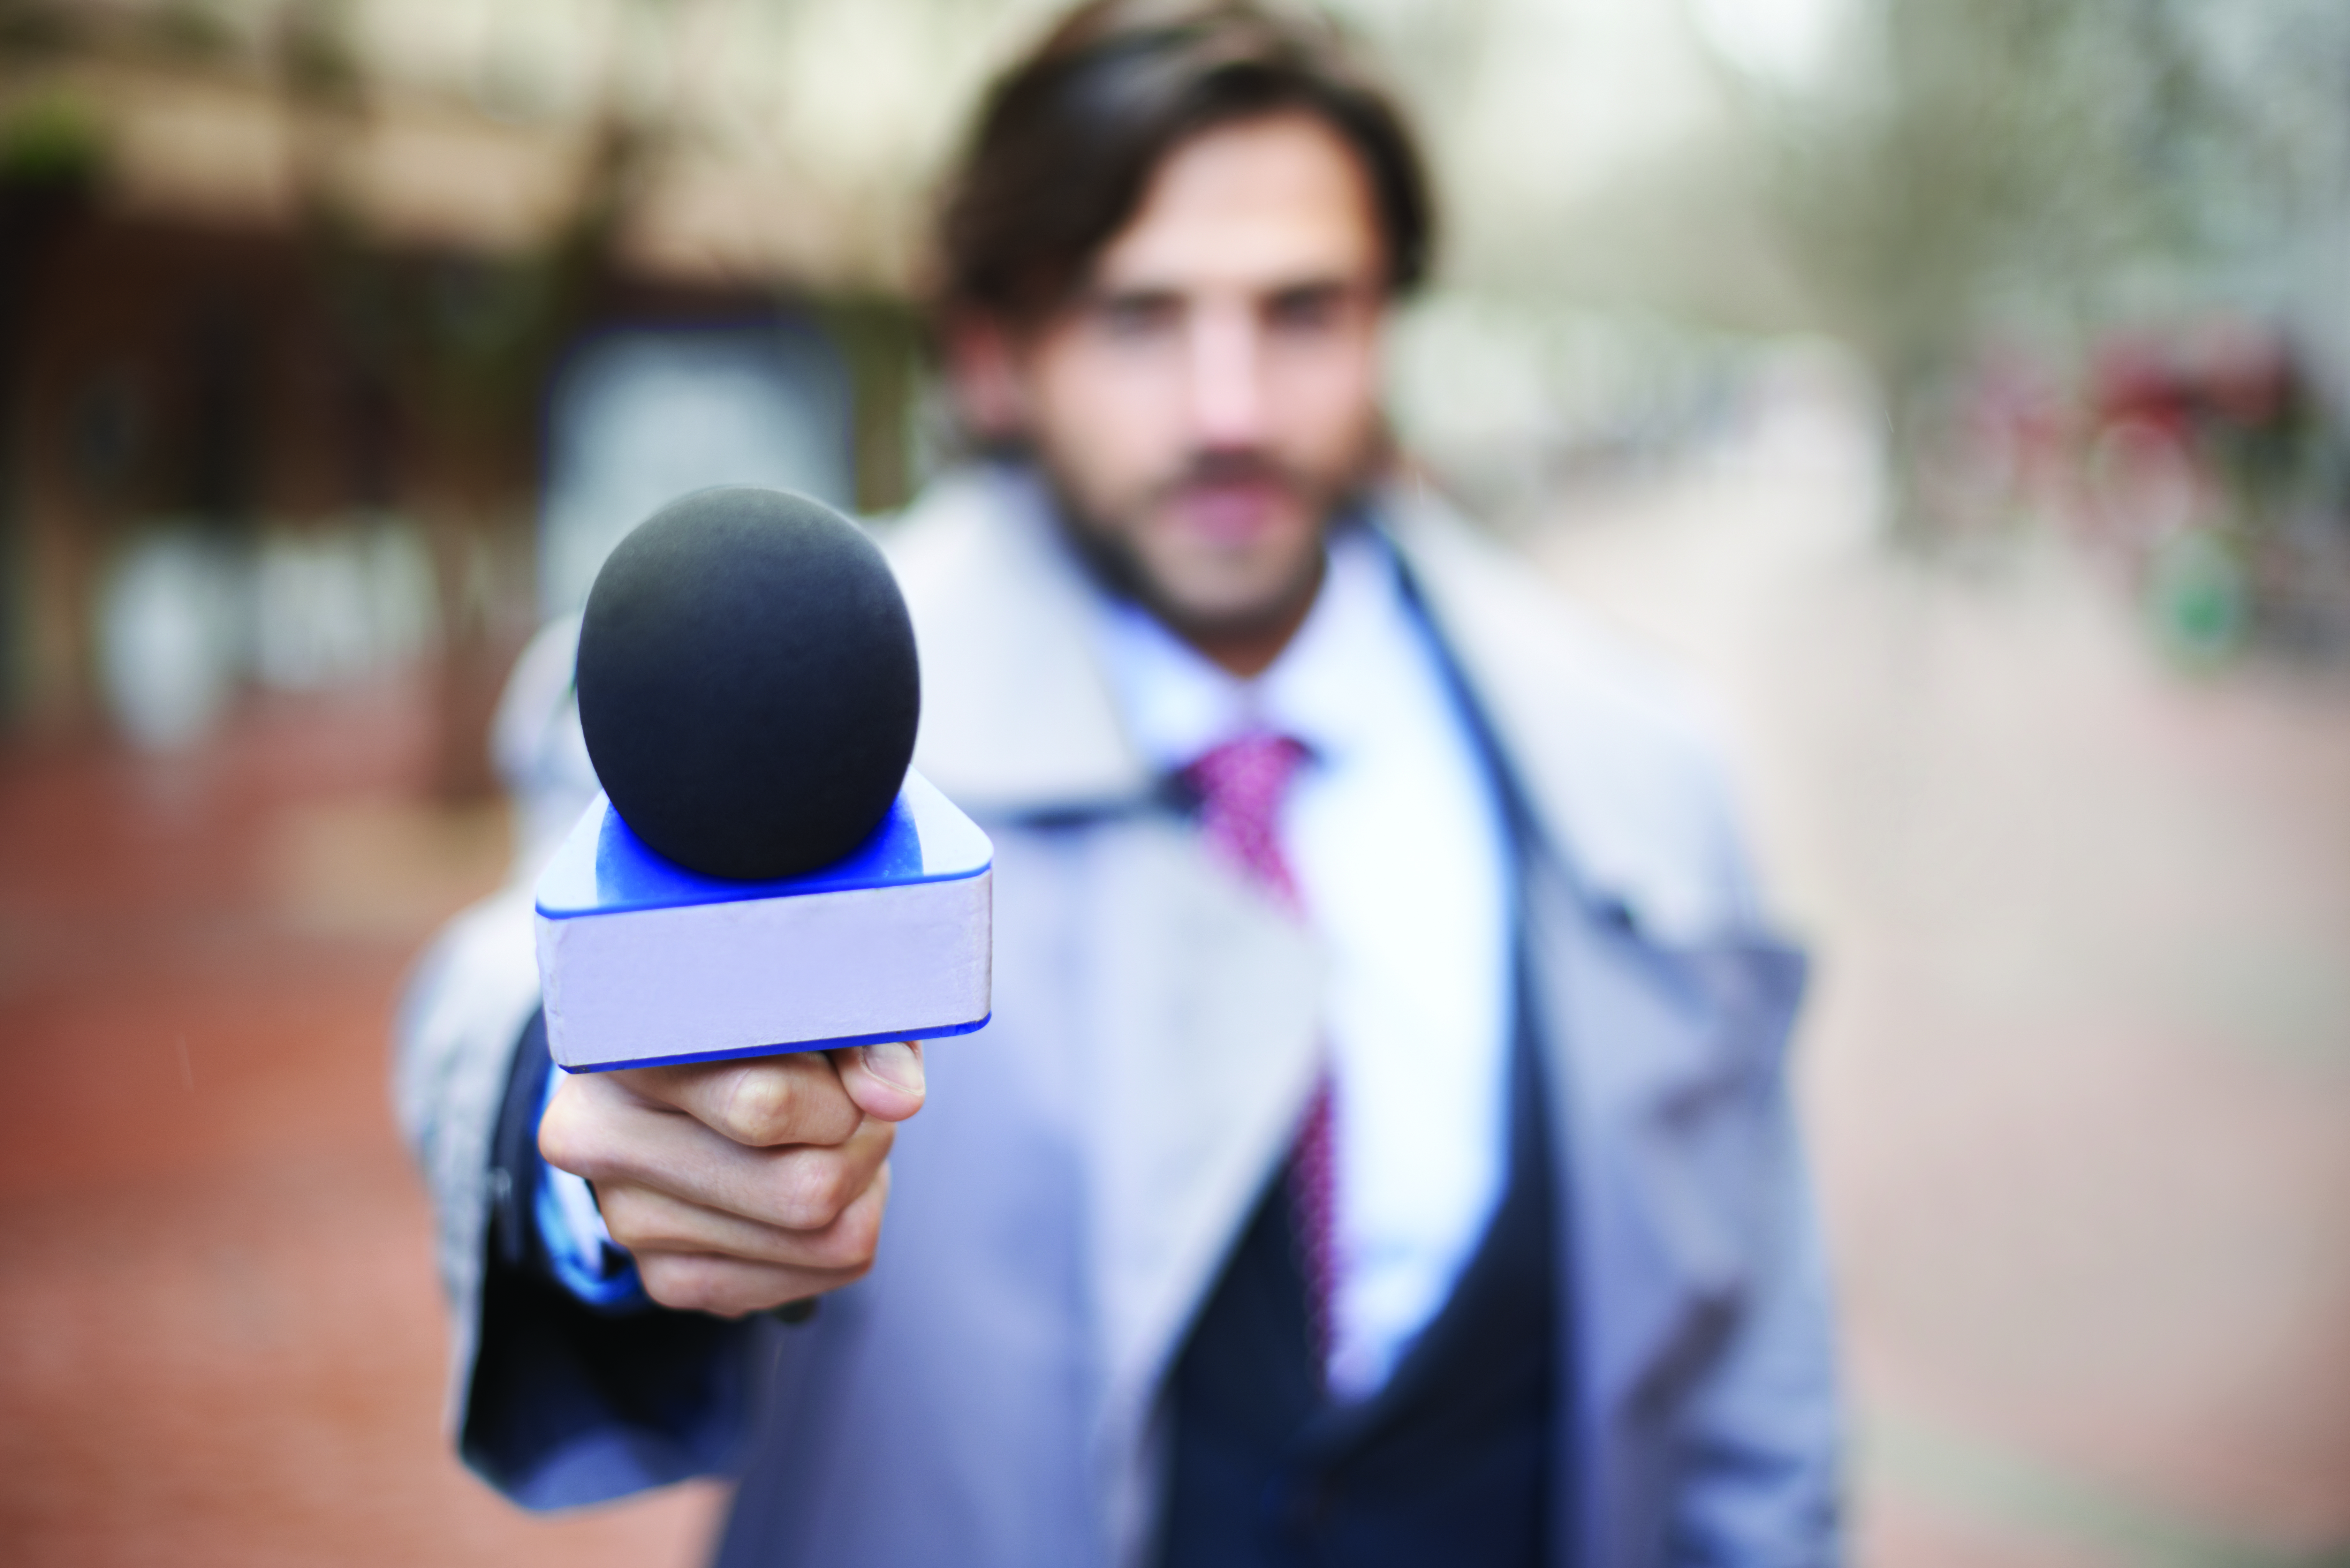 Gotcha! Are You Ready if Reporters Target You During Sweeps Week?